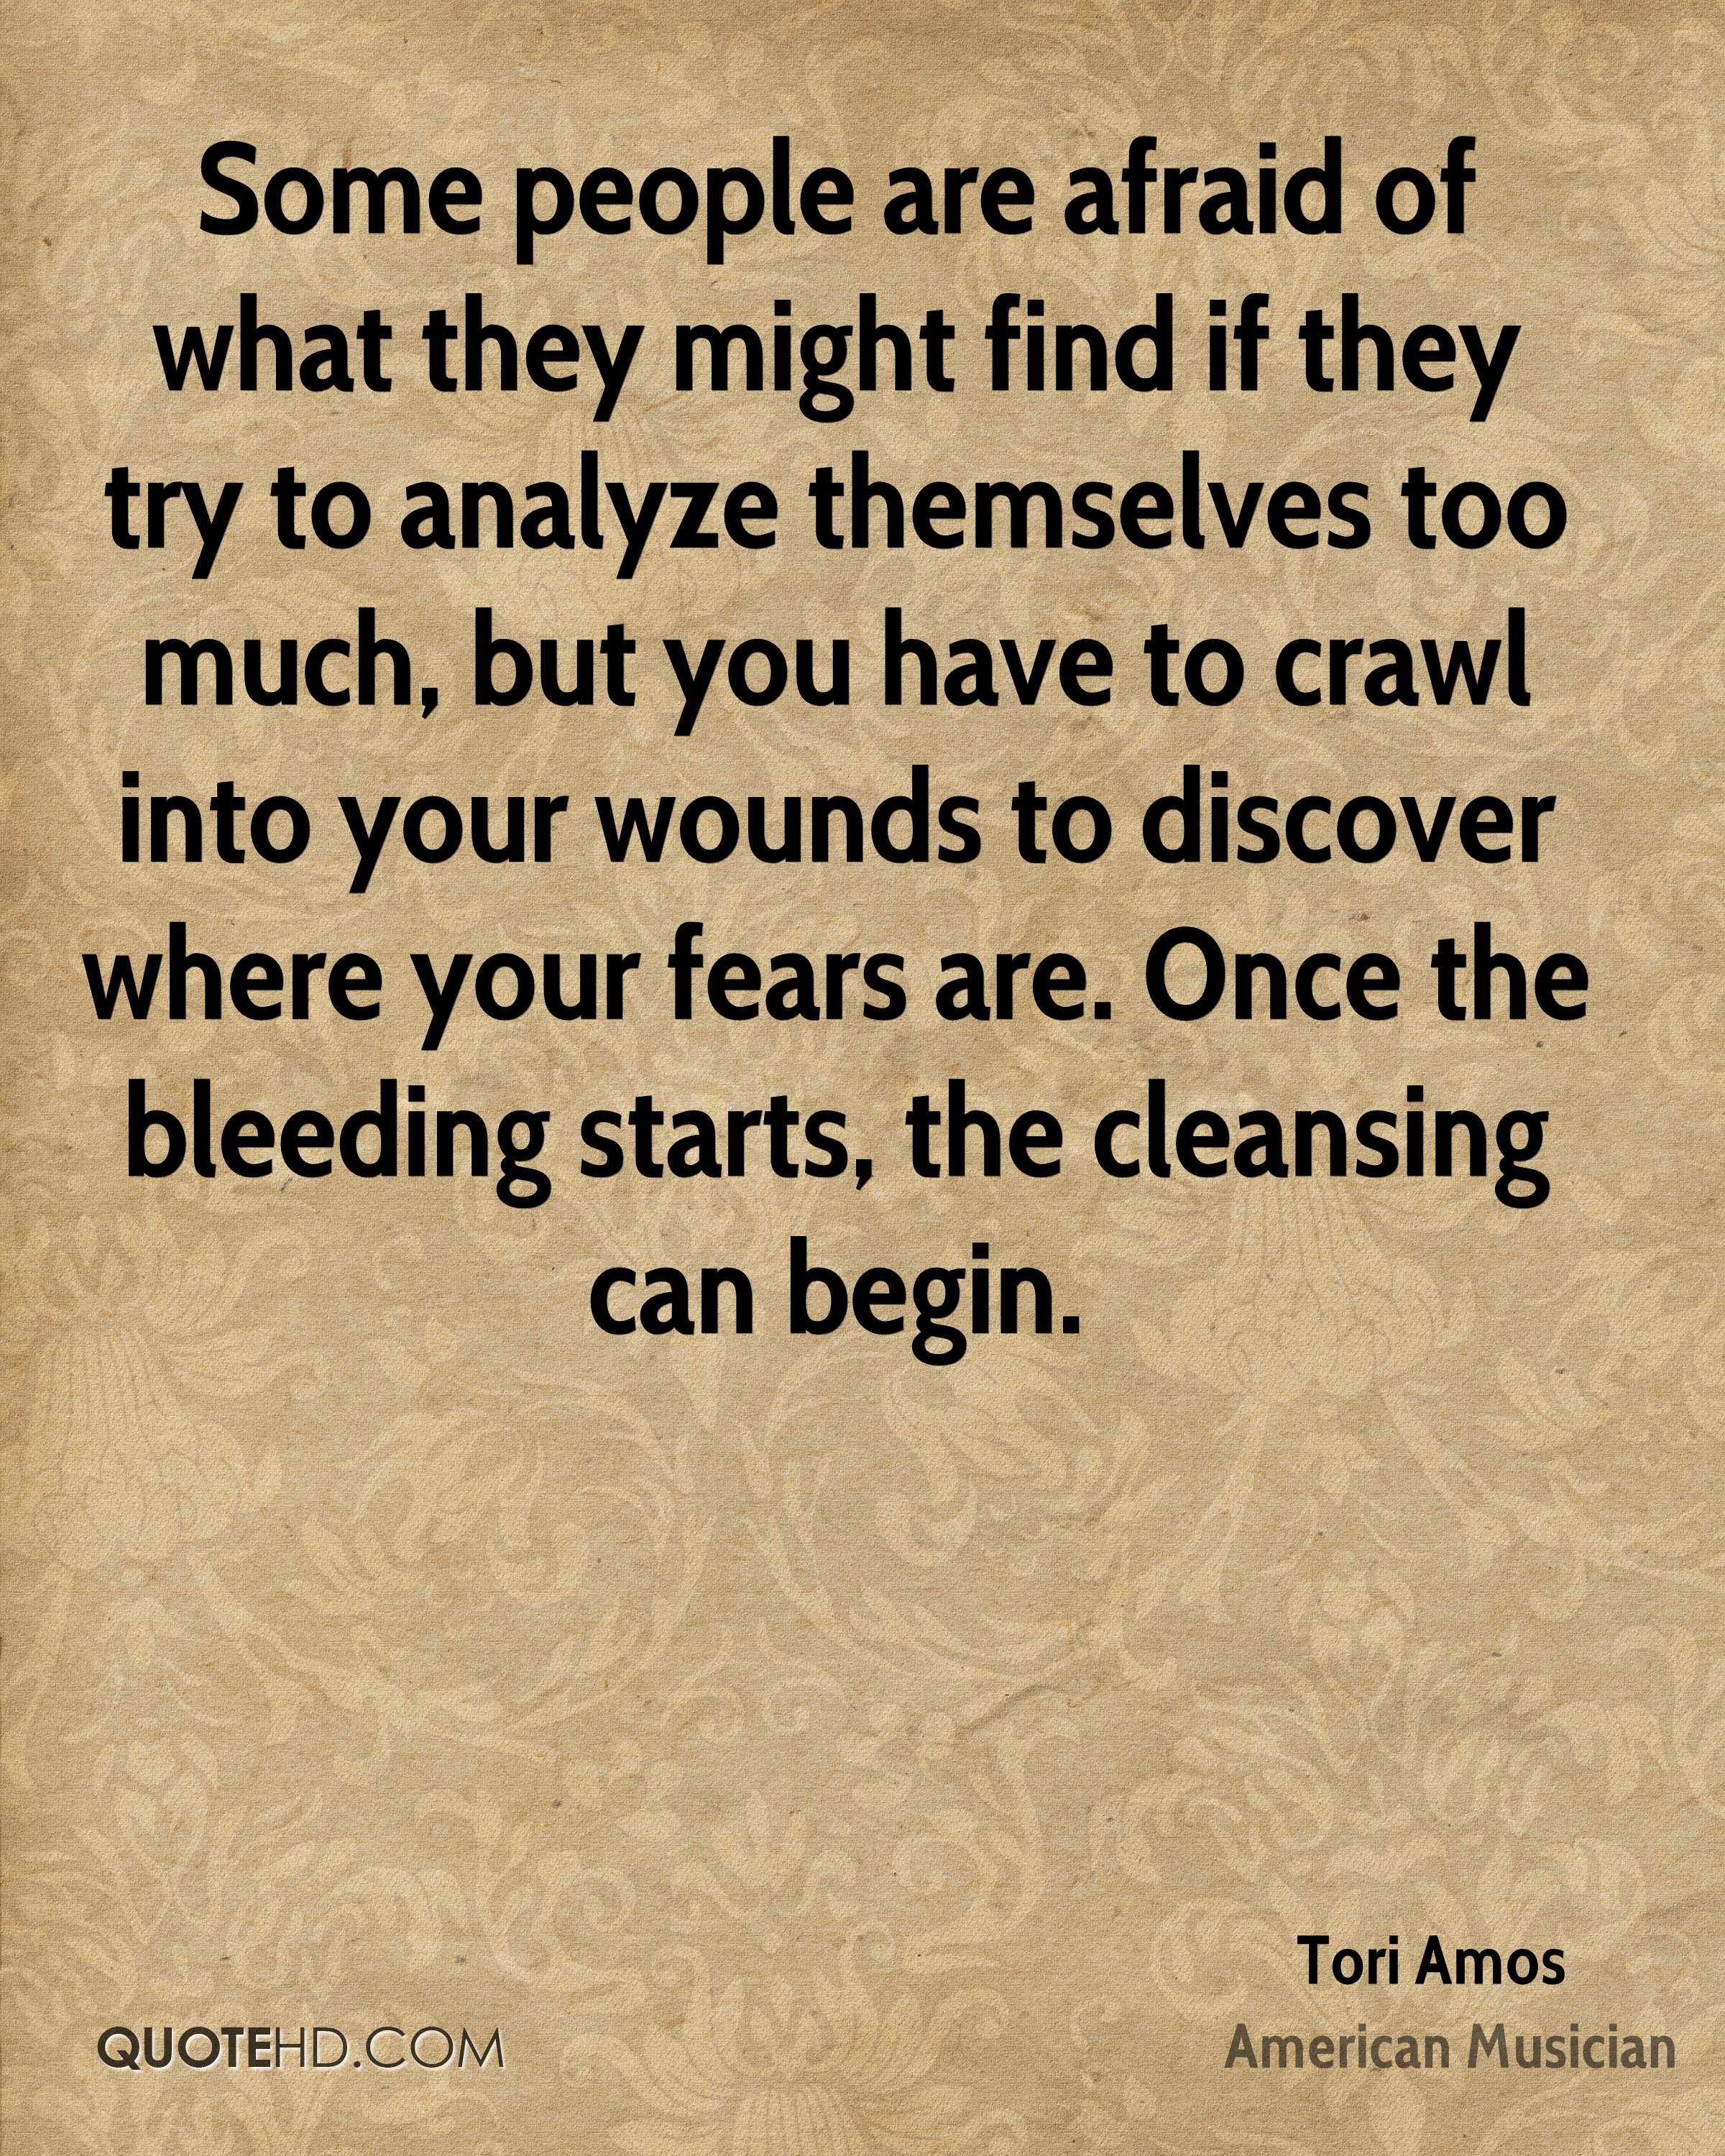 Some people are afraid of what they might find if they try to analyze themselves too much, but you have to crawl into your wounds to discover where your fears are. Once the bleeding starts, the cleansing can begin.